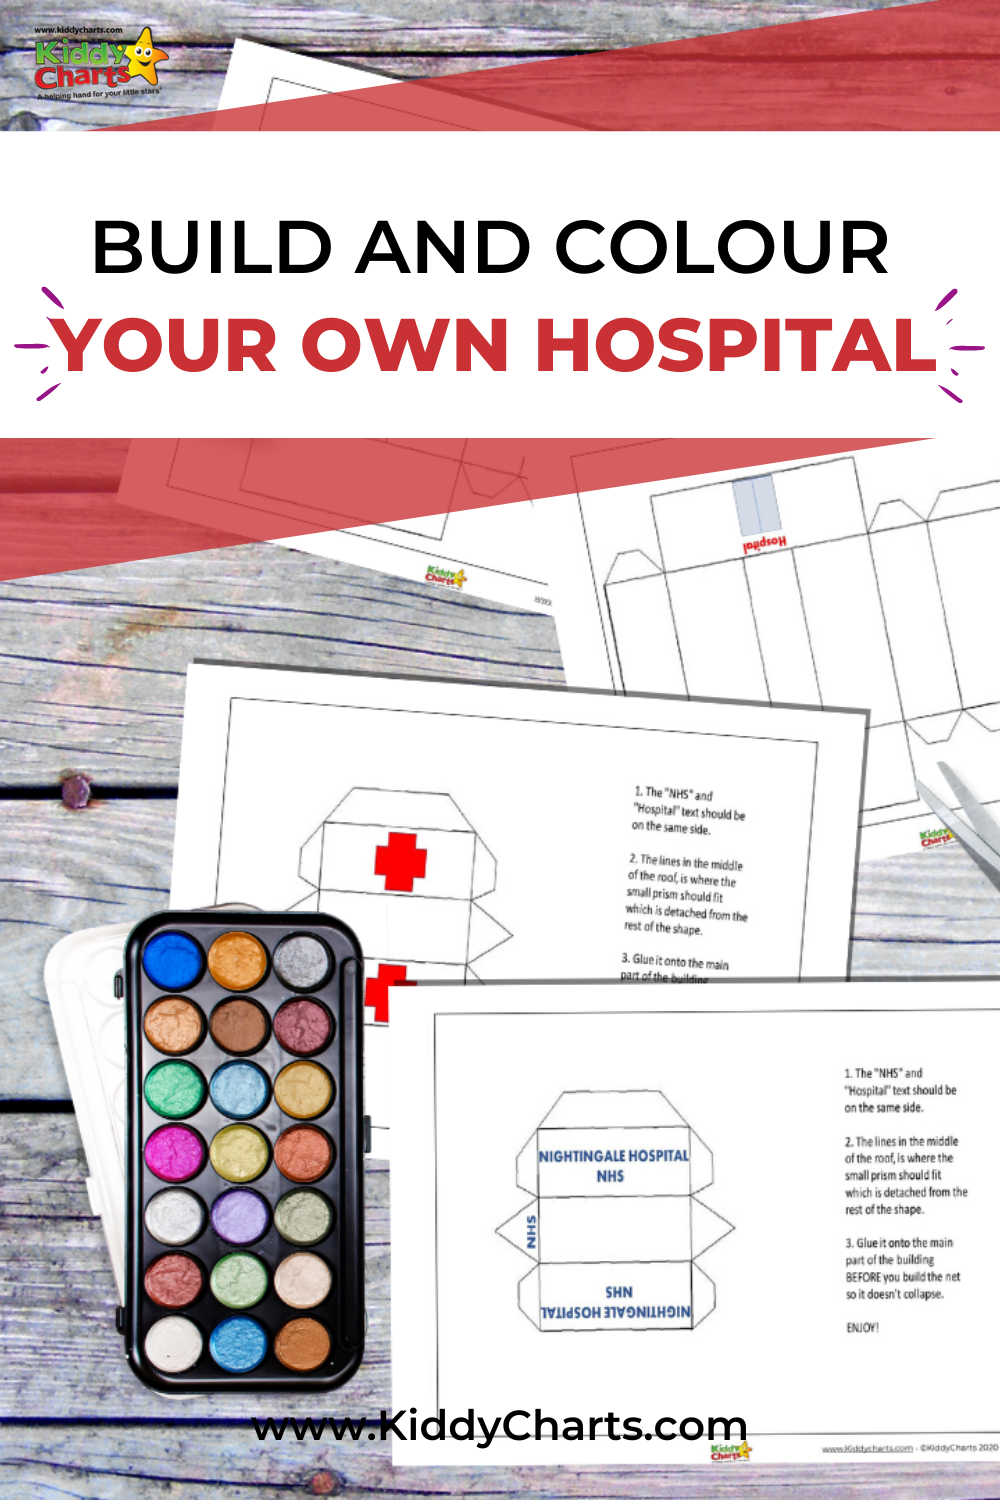 Build and colour your own NHS Nightingale Hosptial